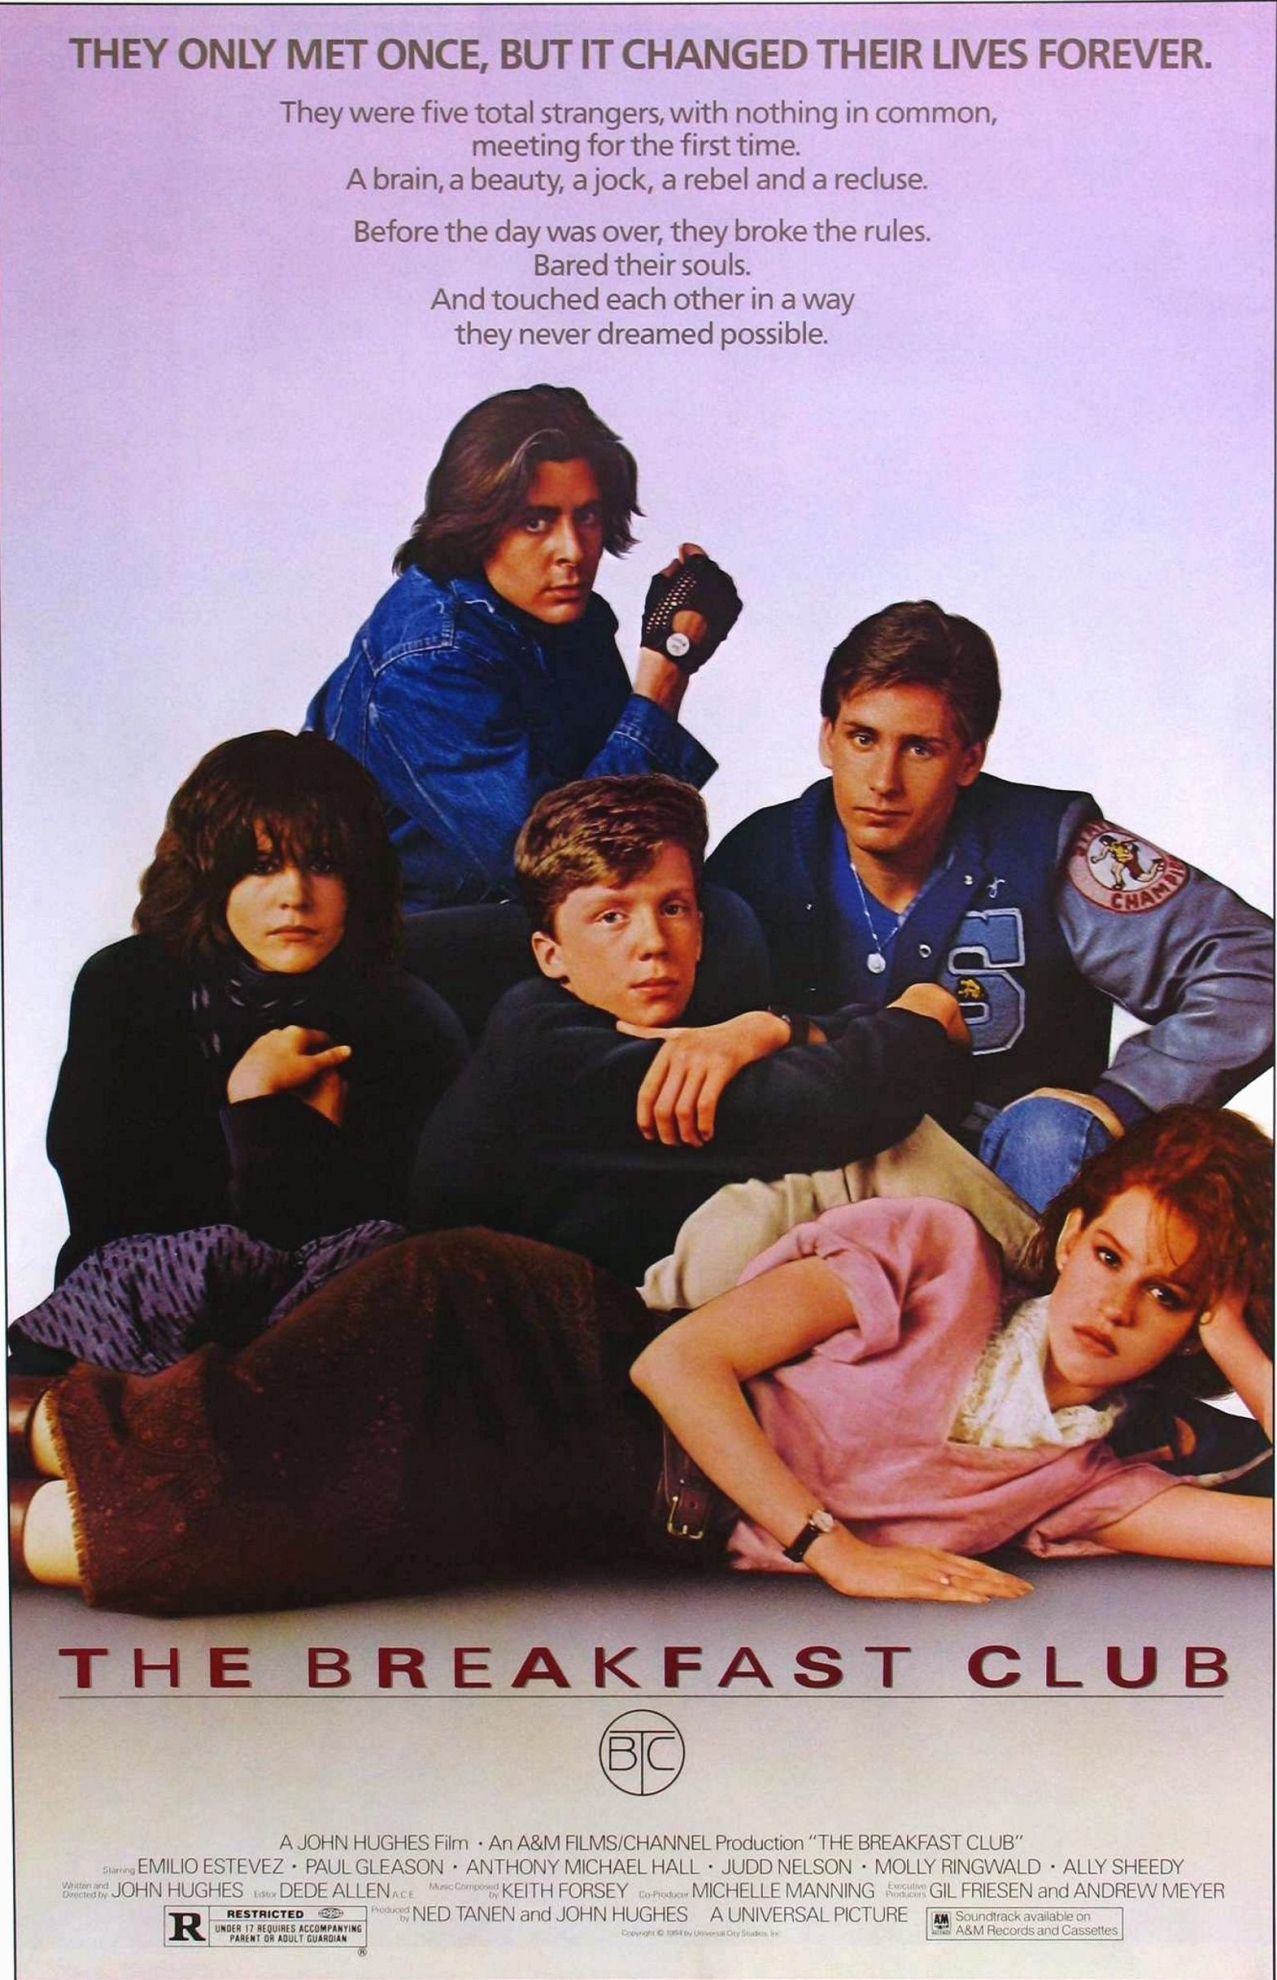 http://verdoux.files.wordpress.com/2008/05/the-breakfast-club-1985-hughes.jpg